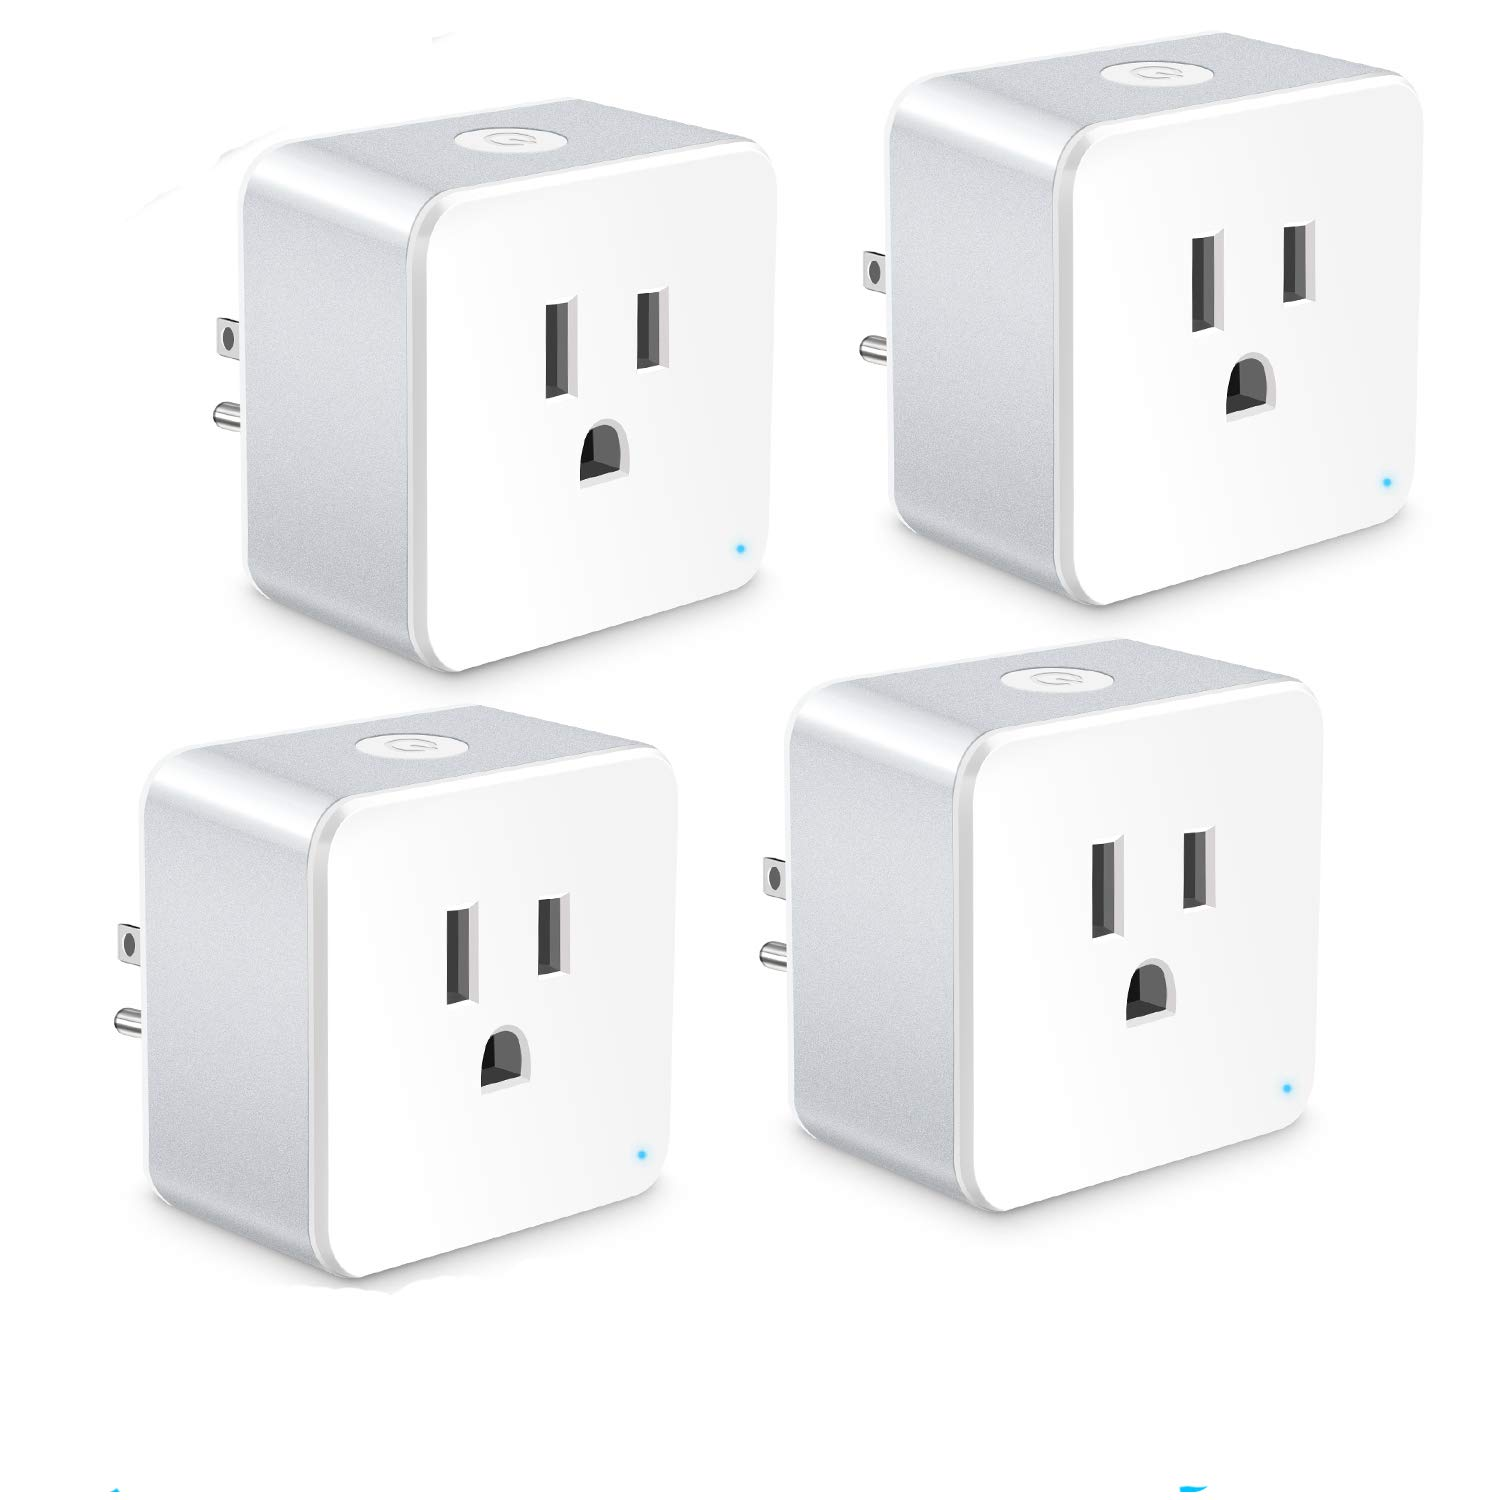 WiFi Smart Plug, Wsky Mini Smart Outlet 4 Pack, Compatible with Alexa & Google Home/IFTTT, APP Remote Control from Anywhere, No Hub Required, WiFi Enabled Voice Control Smart Socket